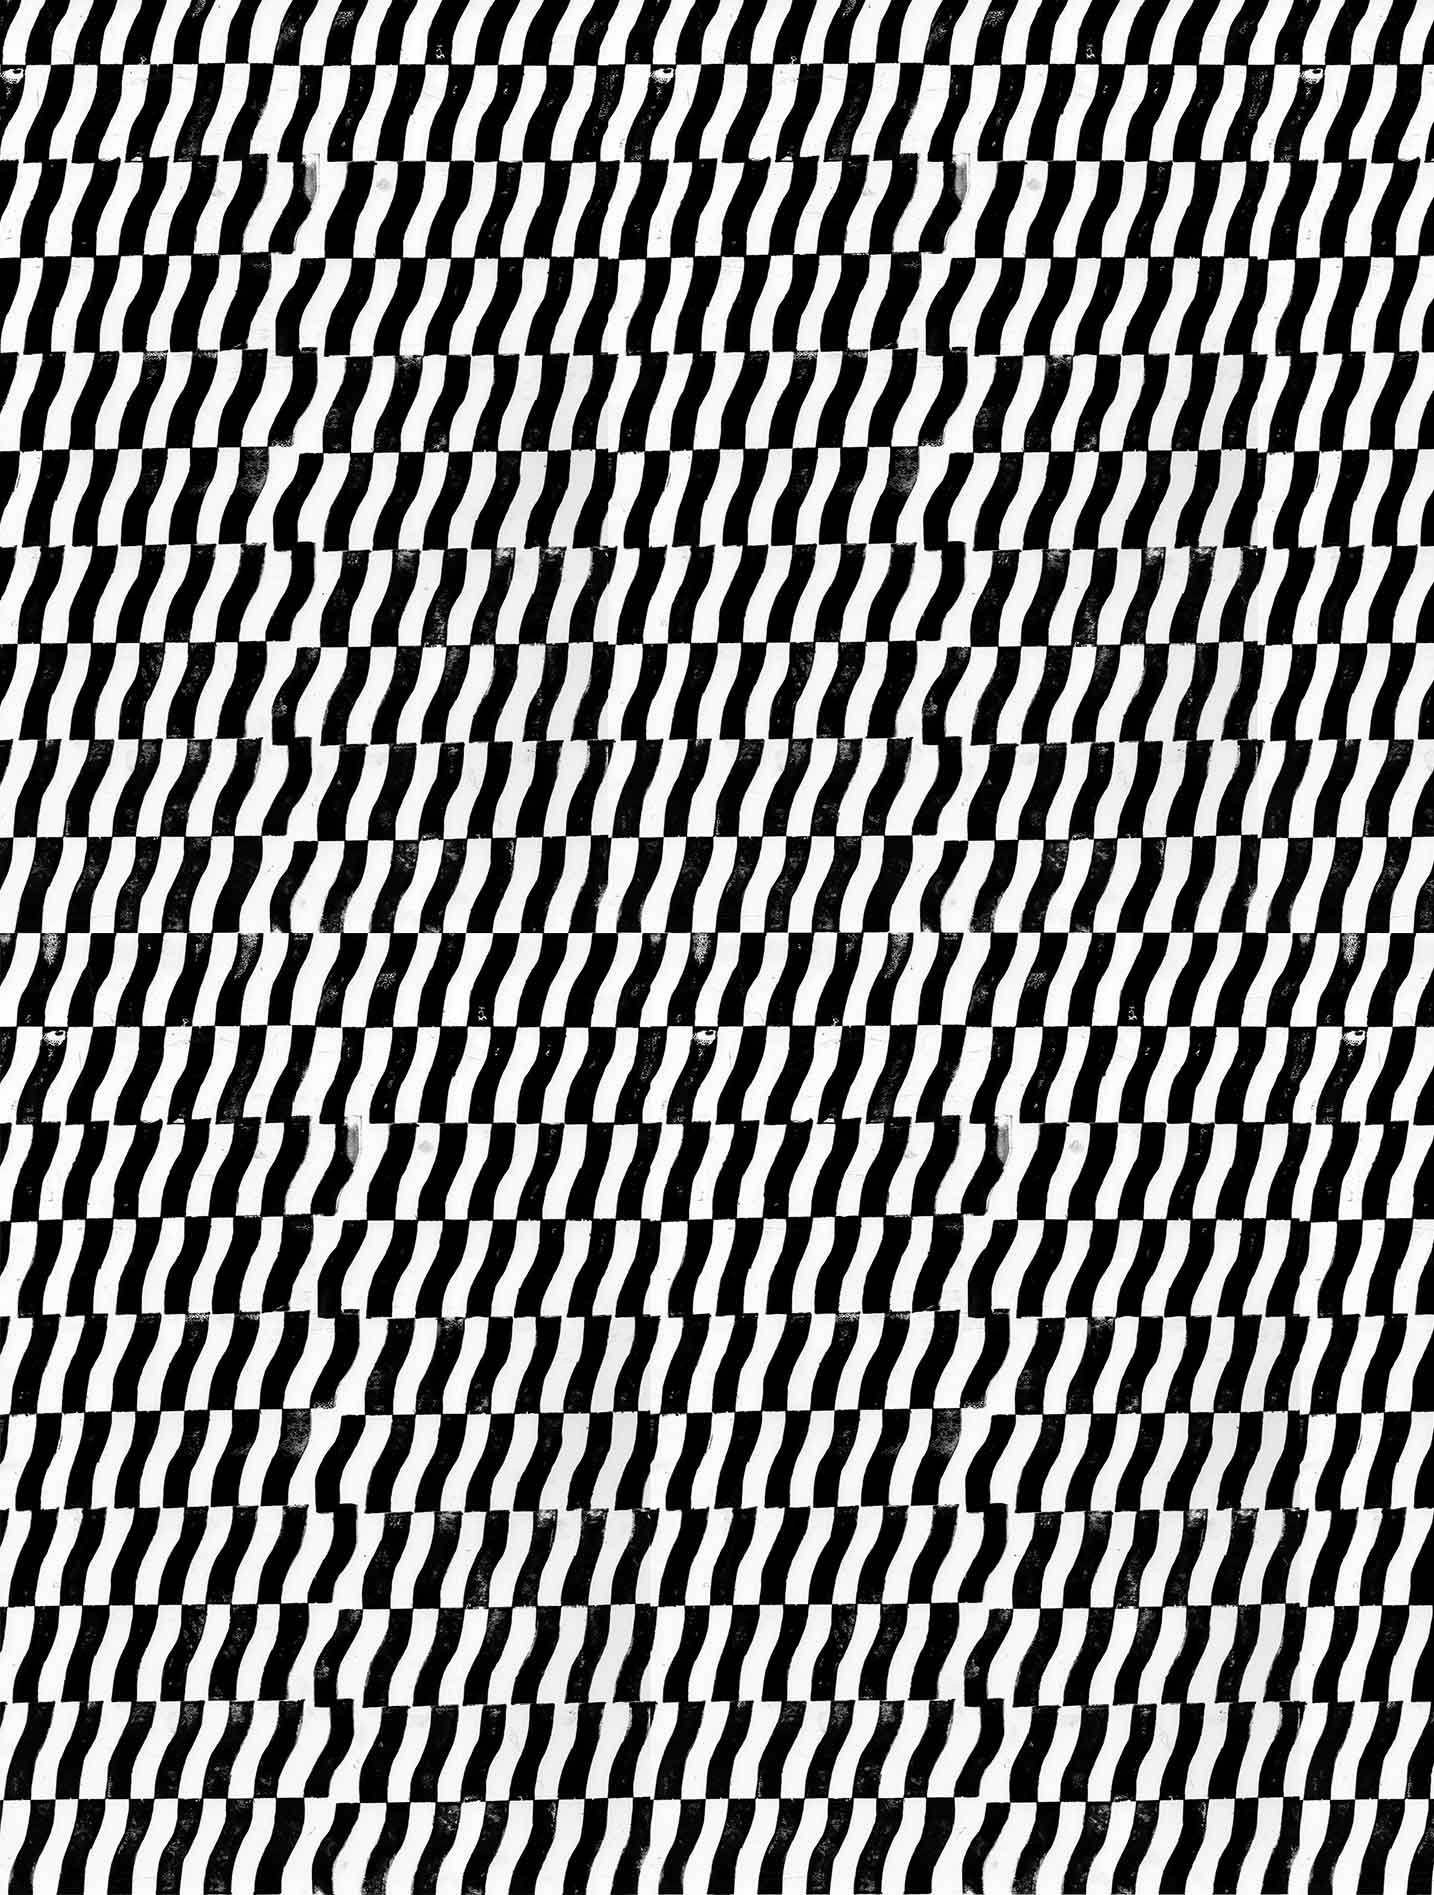 Curved Stripes Image